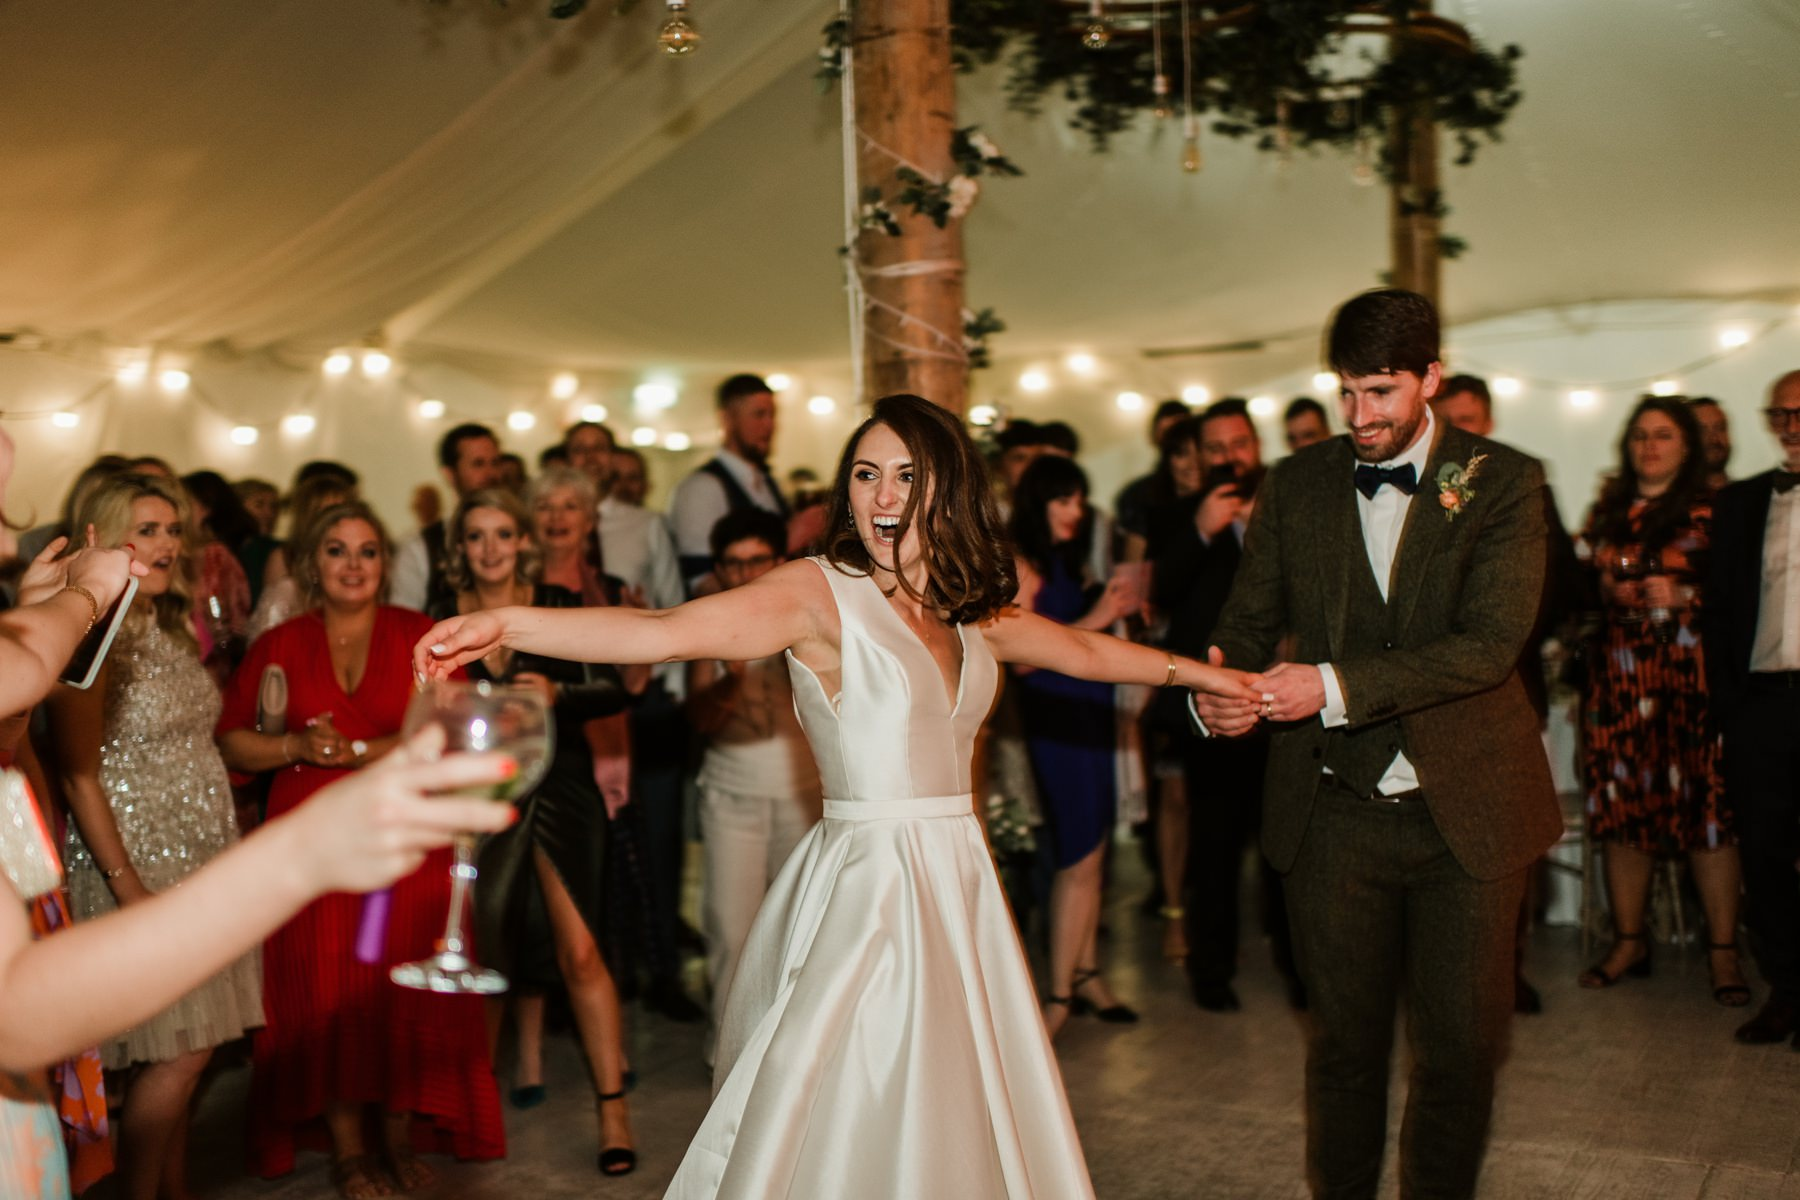 first dance, bride and groom,party ,